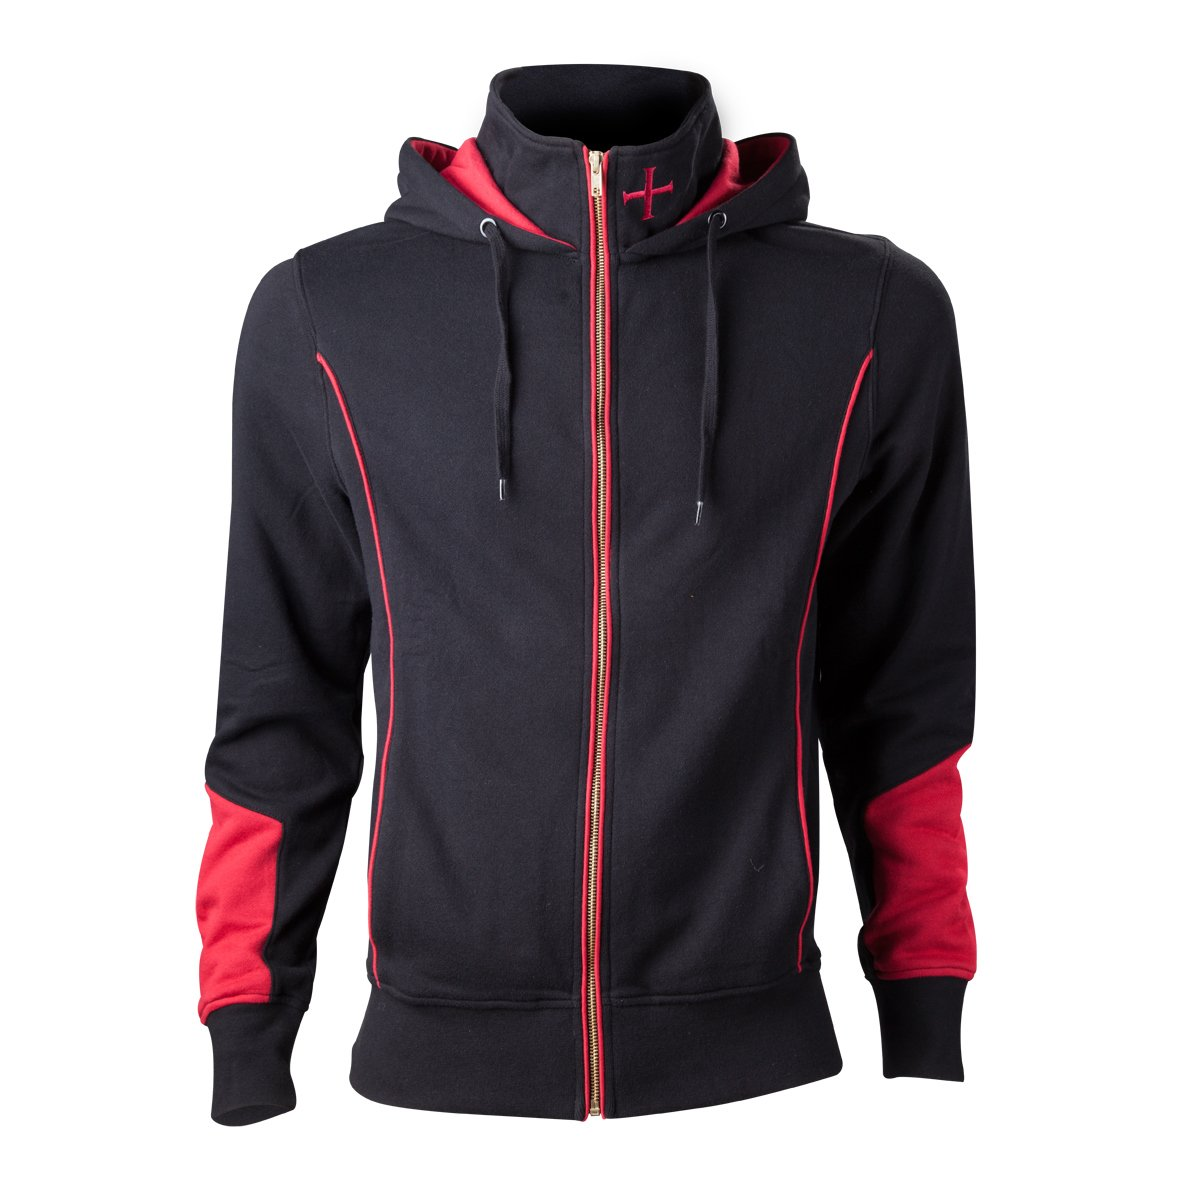 Assassins Creed Rogue - Sudadera con capucha, color negro/rojo, Talla M